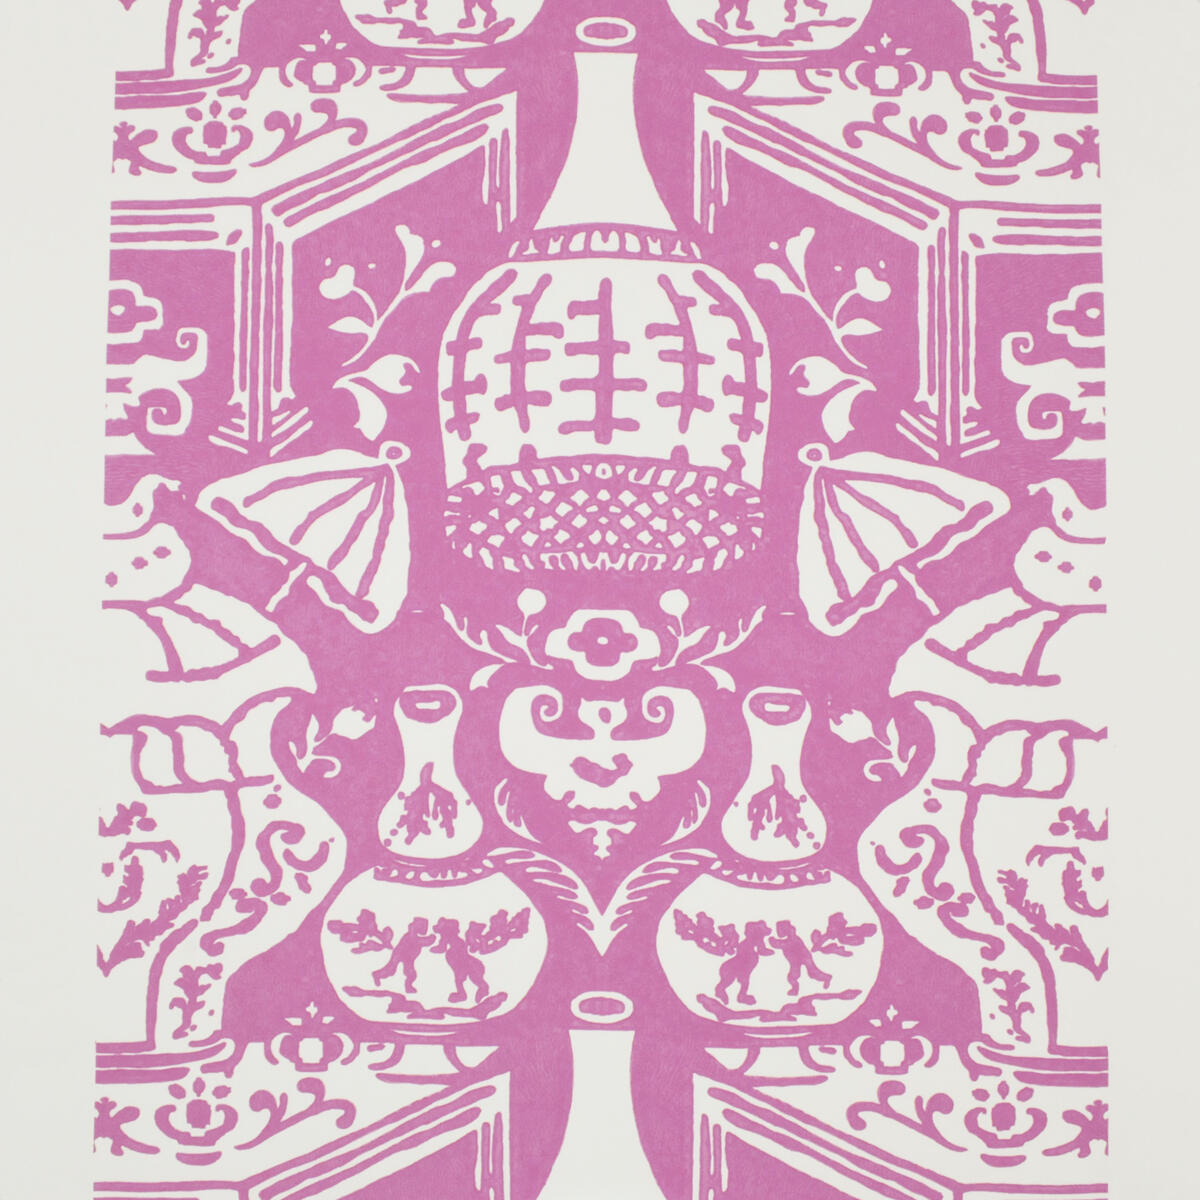 The Vase Hot Pink